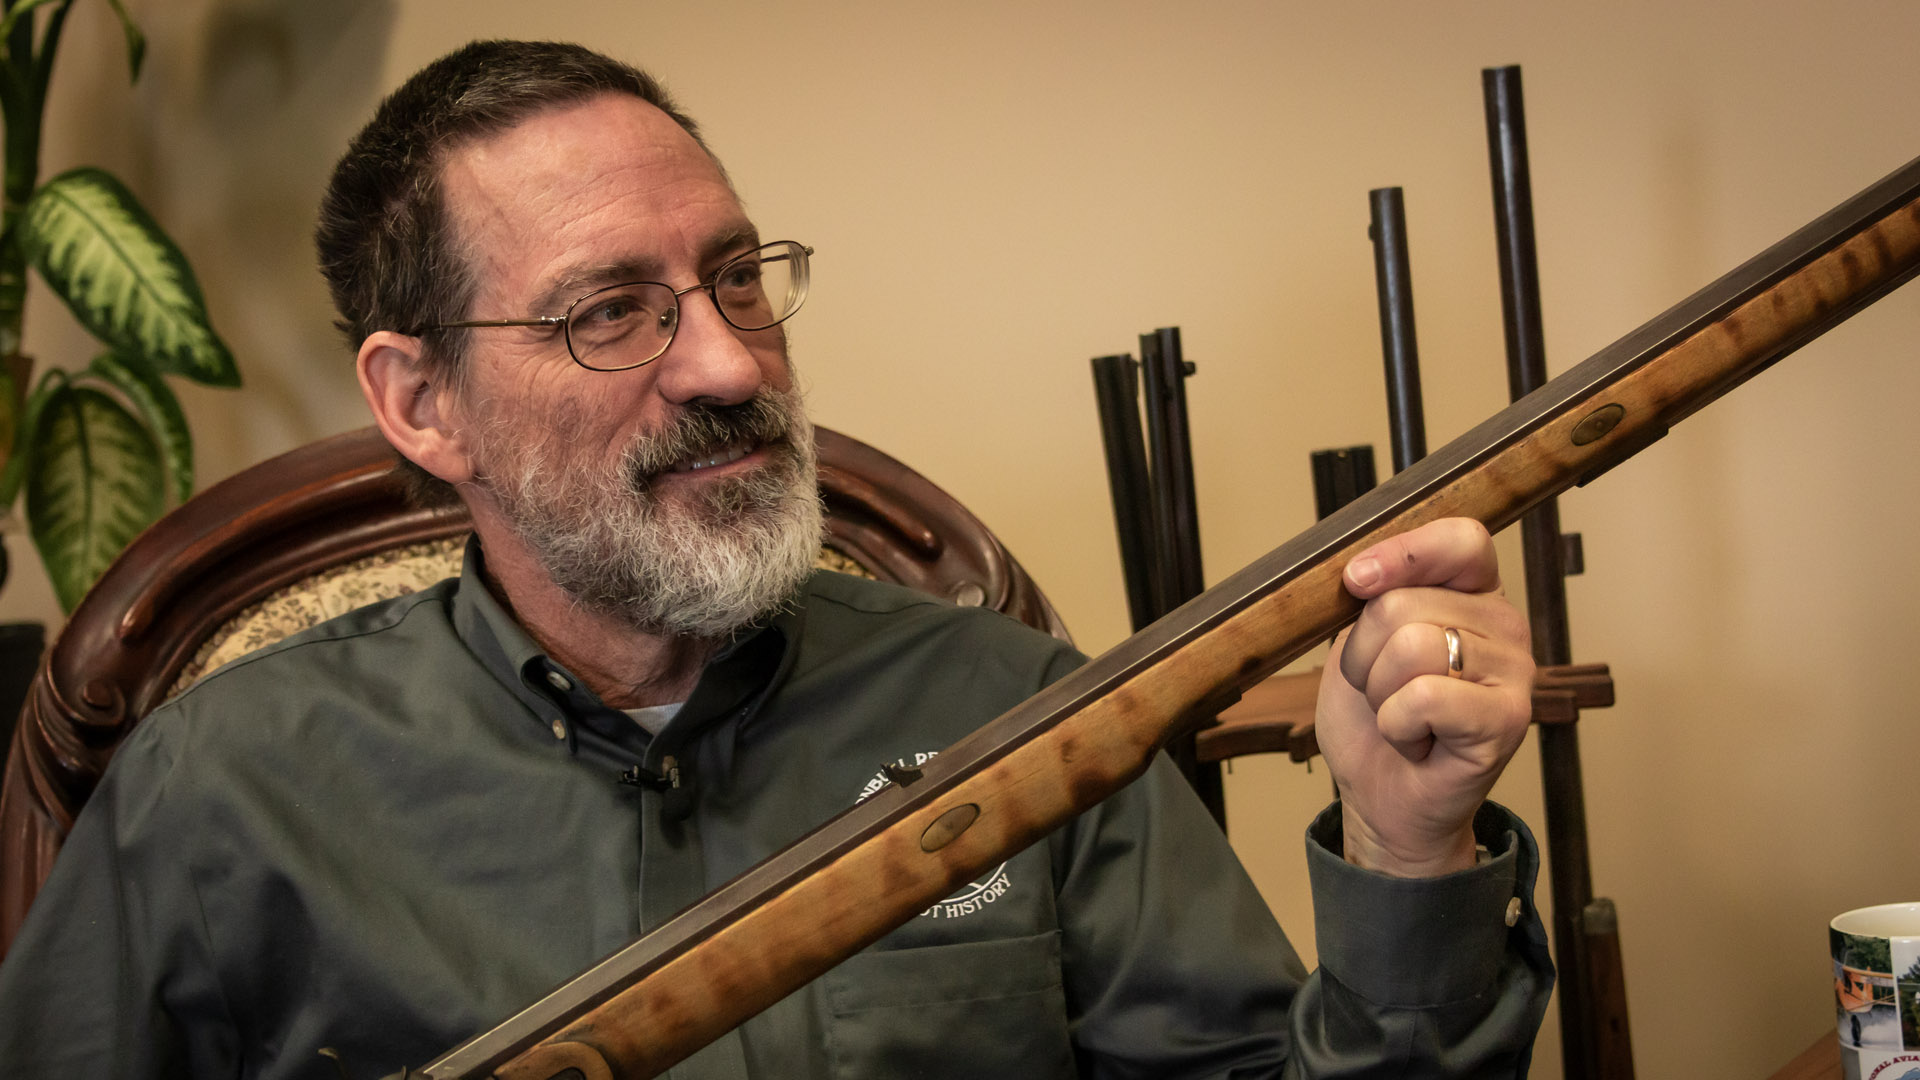 Photo of Doug Turnbull showing a muzzleloader rifle that he built from a kit when he was 12 years old